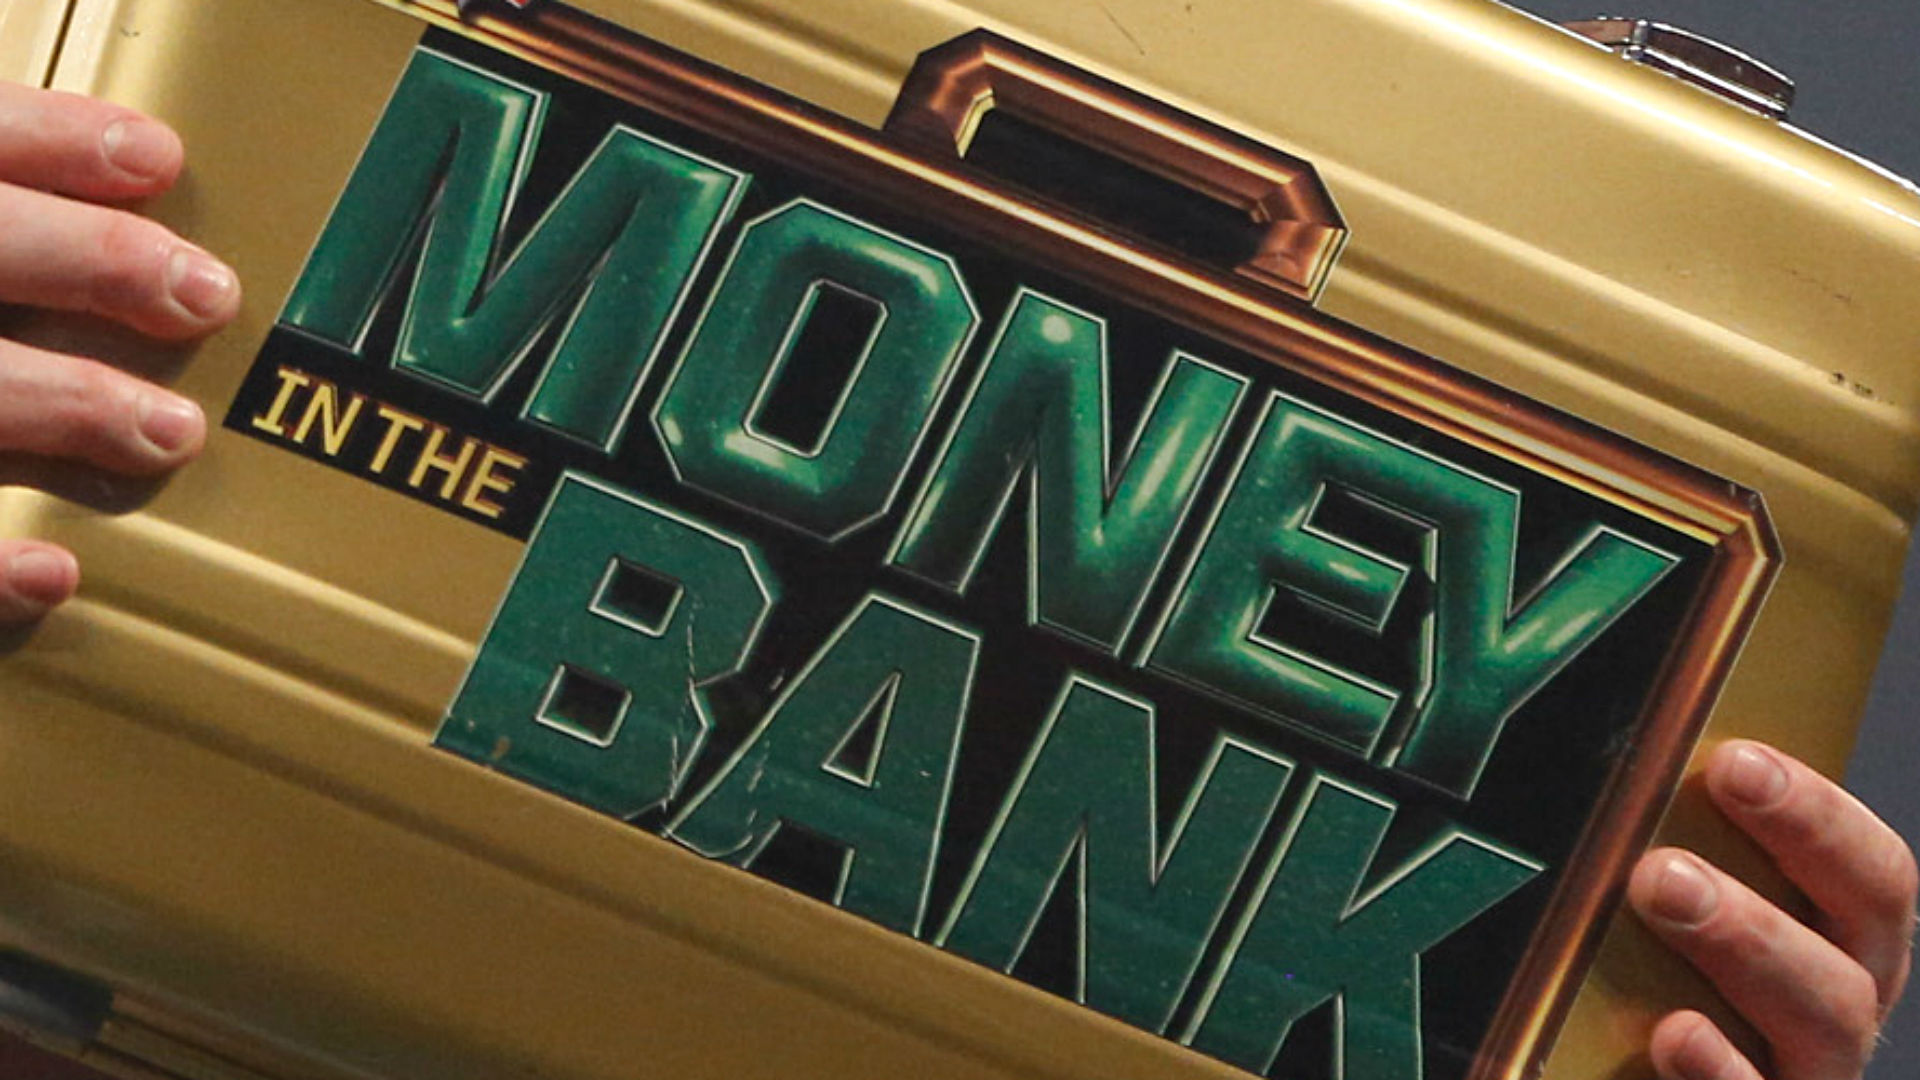 WWE 'Money in the Bank' 2017 results: Baron Corbin wins case, Jinder Mahal retains title | WWE ...